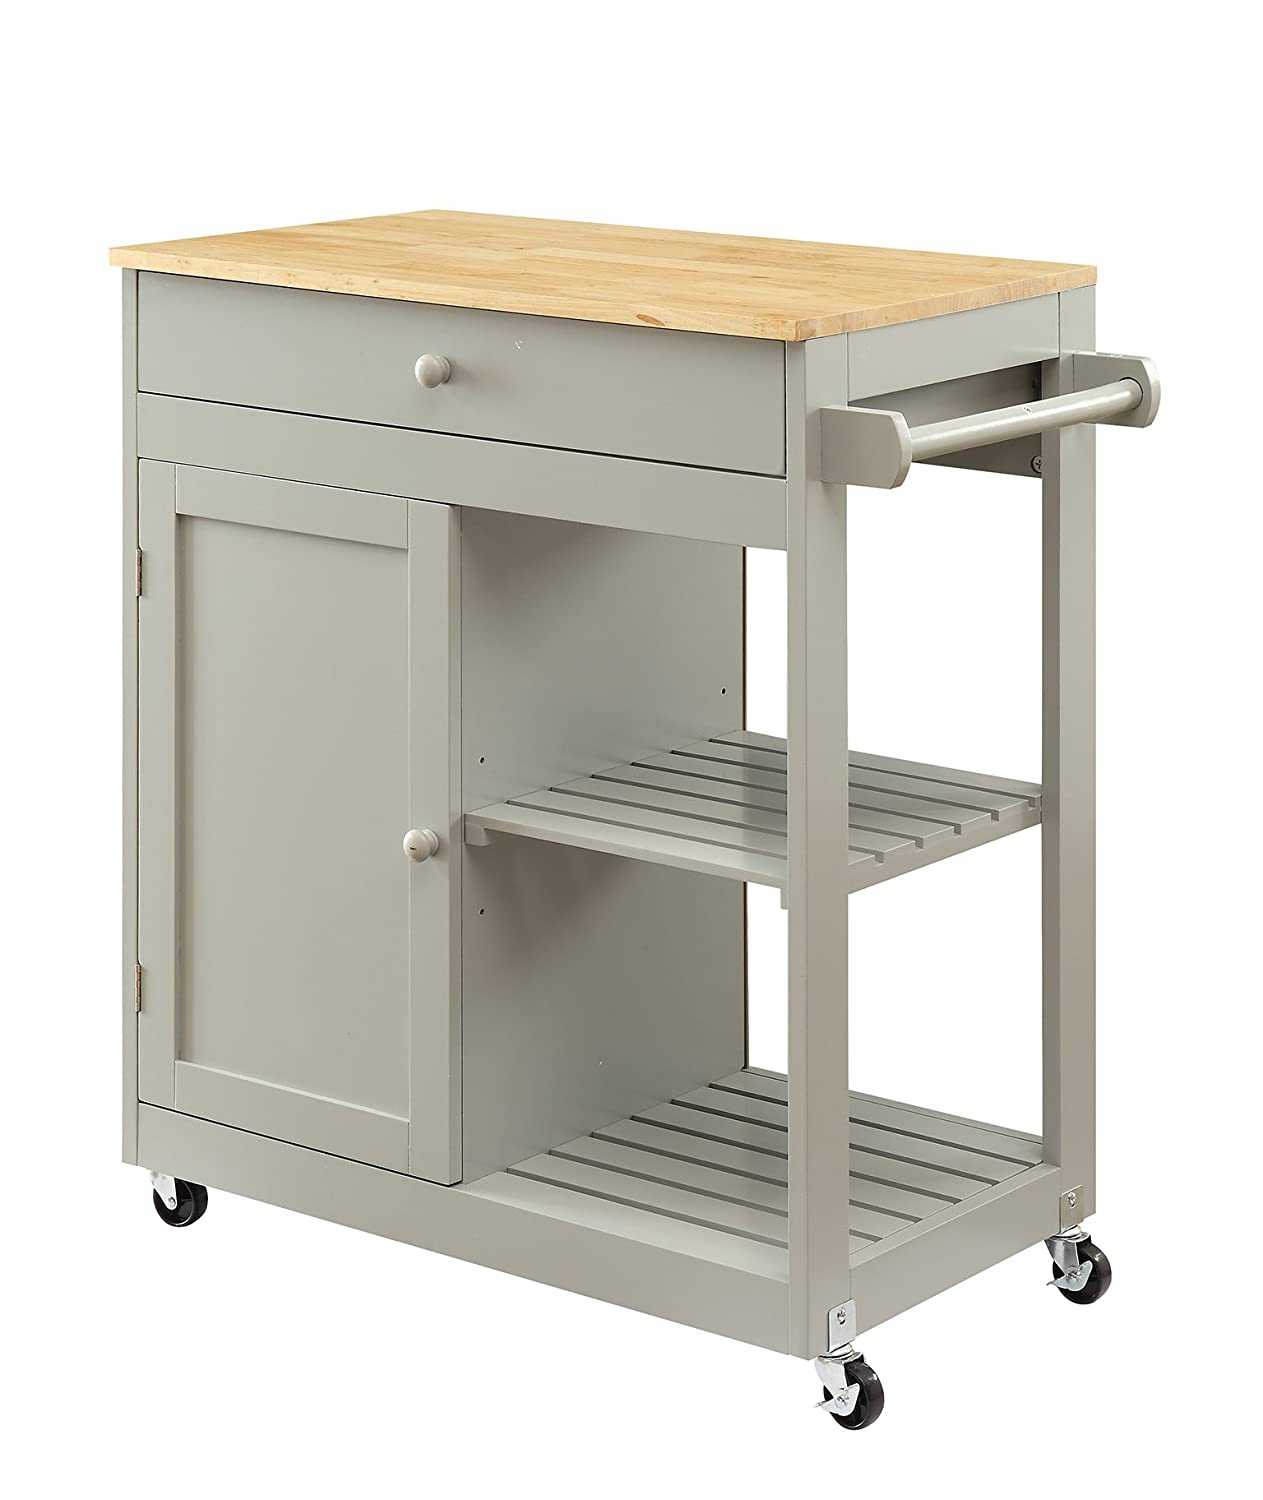 LIFE Home Oliver and Smith - Nashville Collection - Mobile Kitchen Island Cart on Wheels - Wooden Grey - Natural Oak Butcher Block - 30